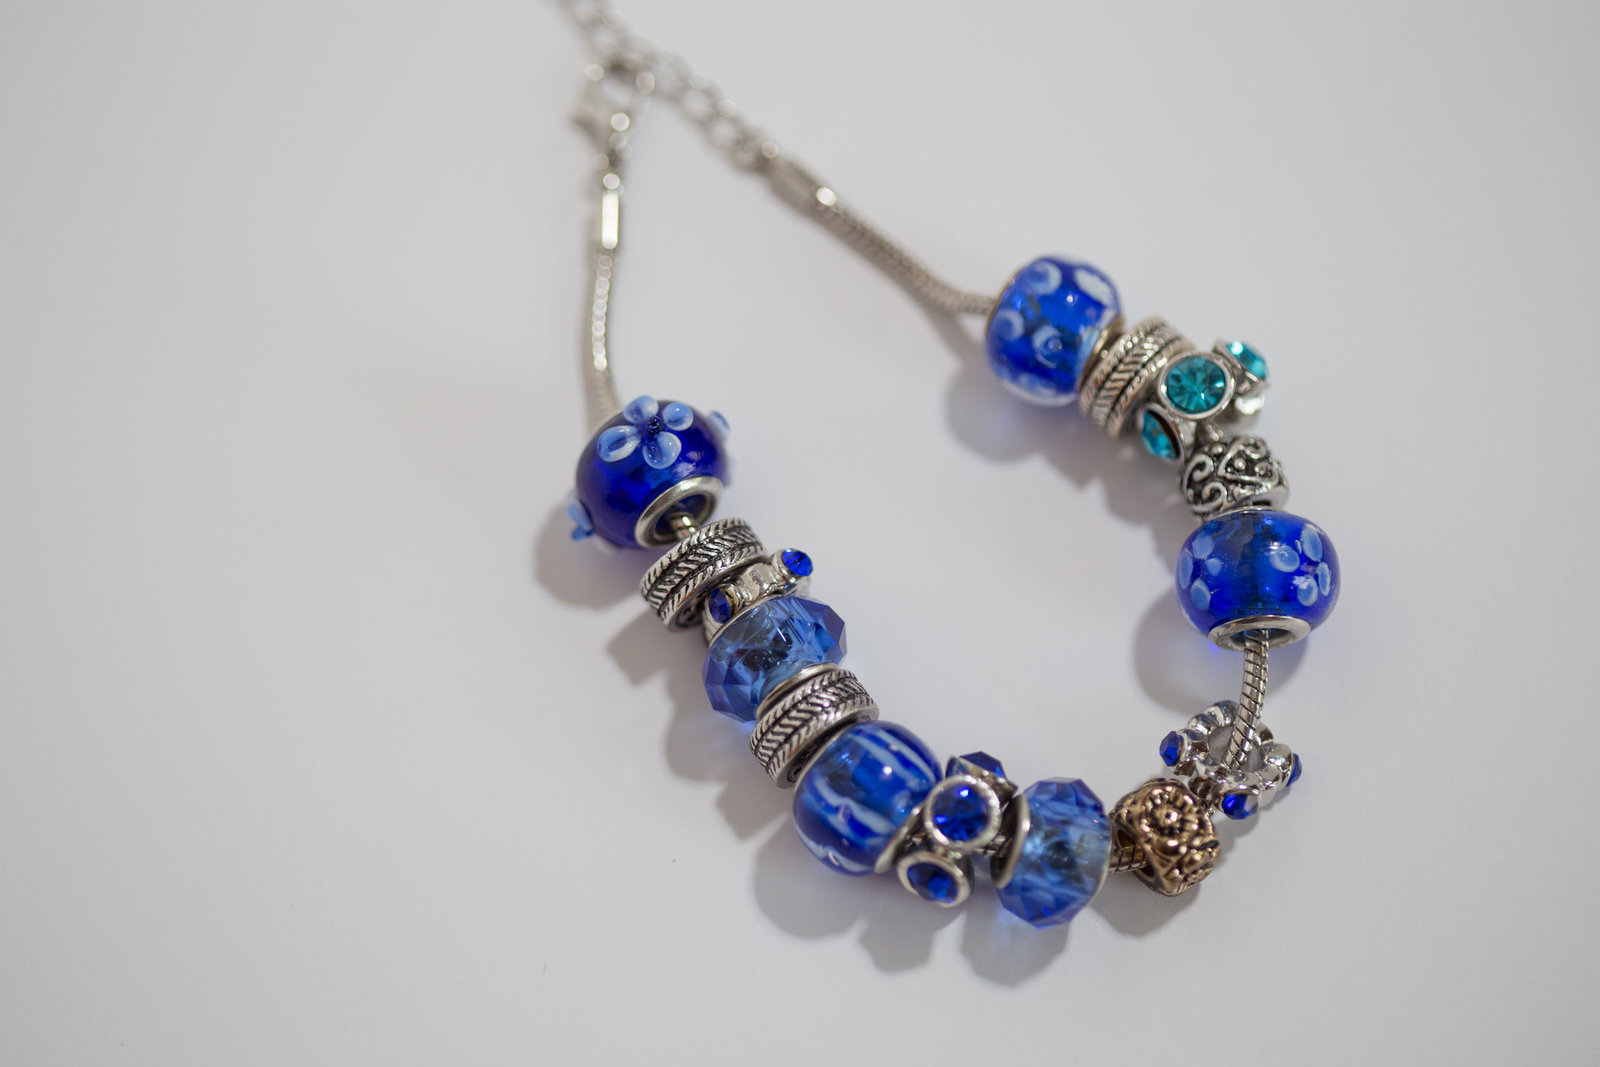 Check out the latest jewelry creation  photographed by Lynda Louis Photography